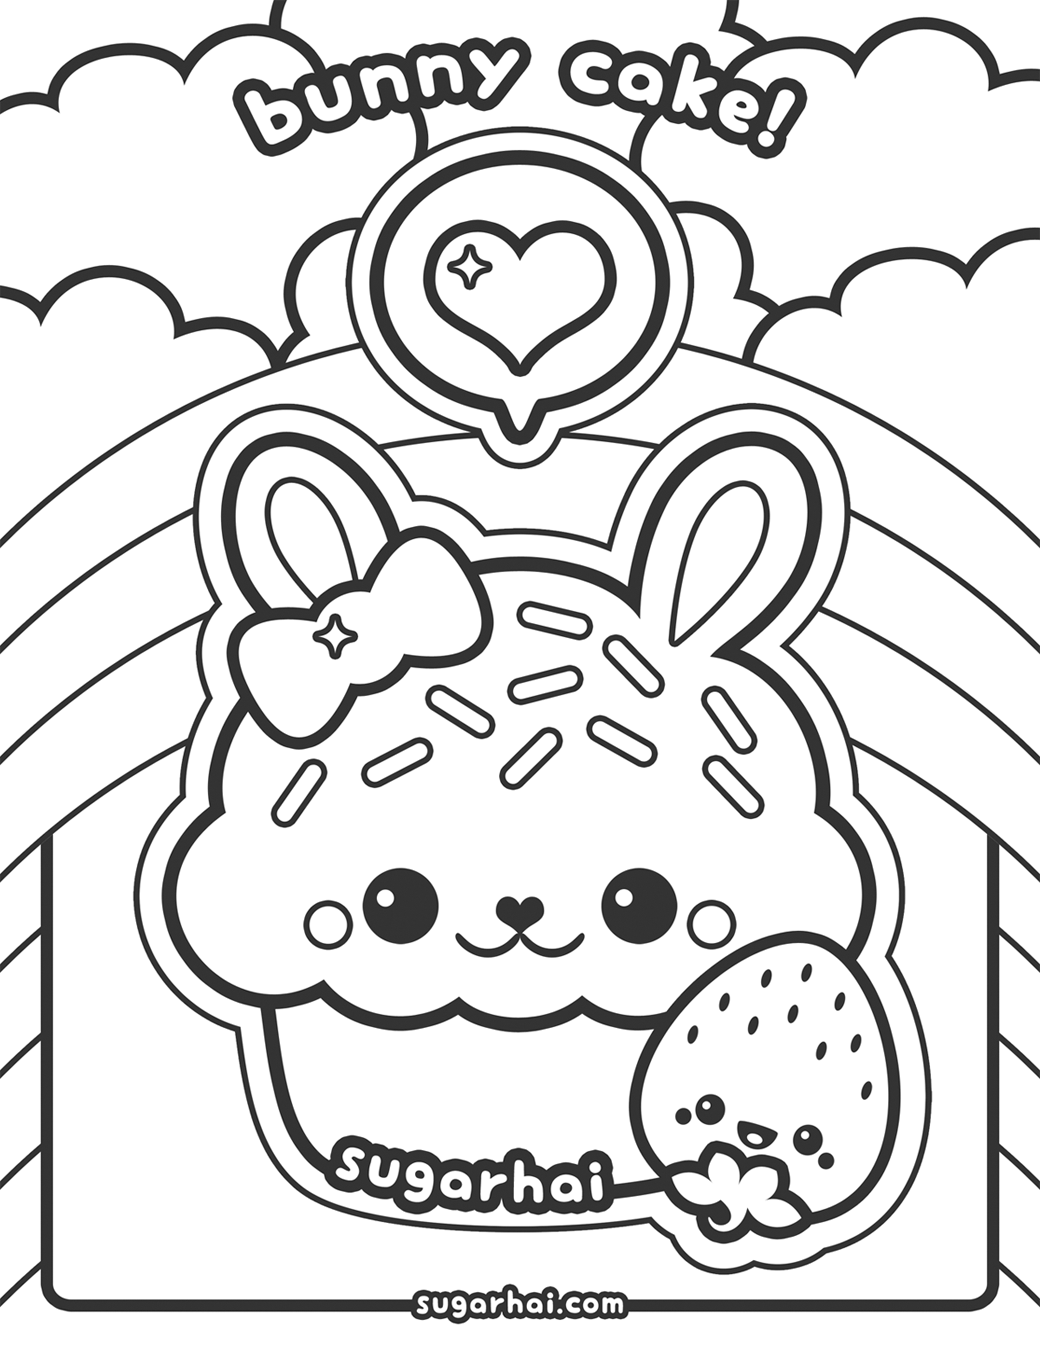 free bunny cake coloring page ( images)  bunny